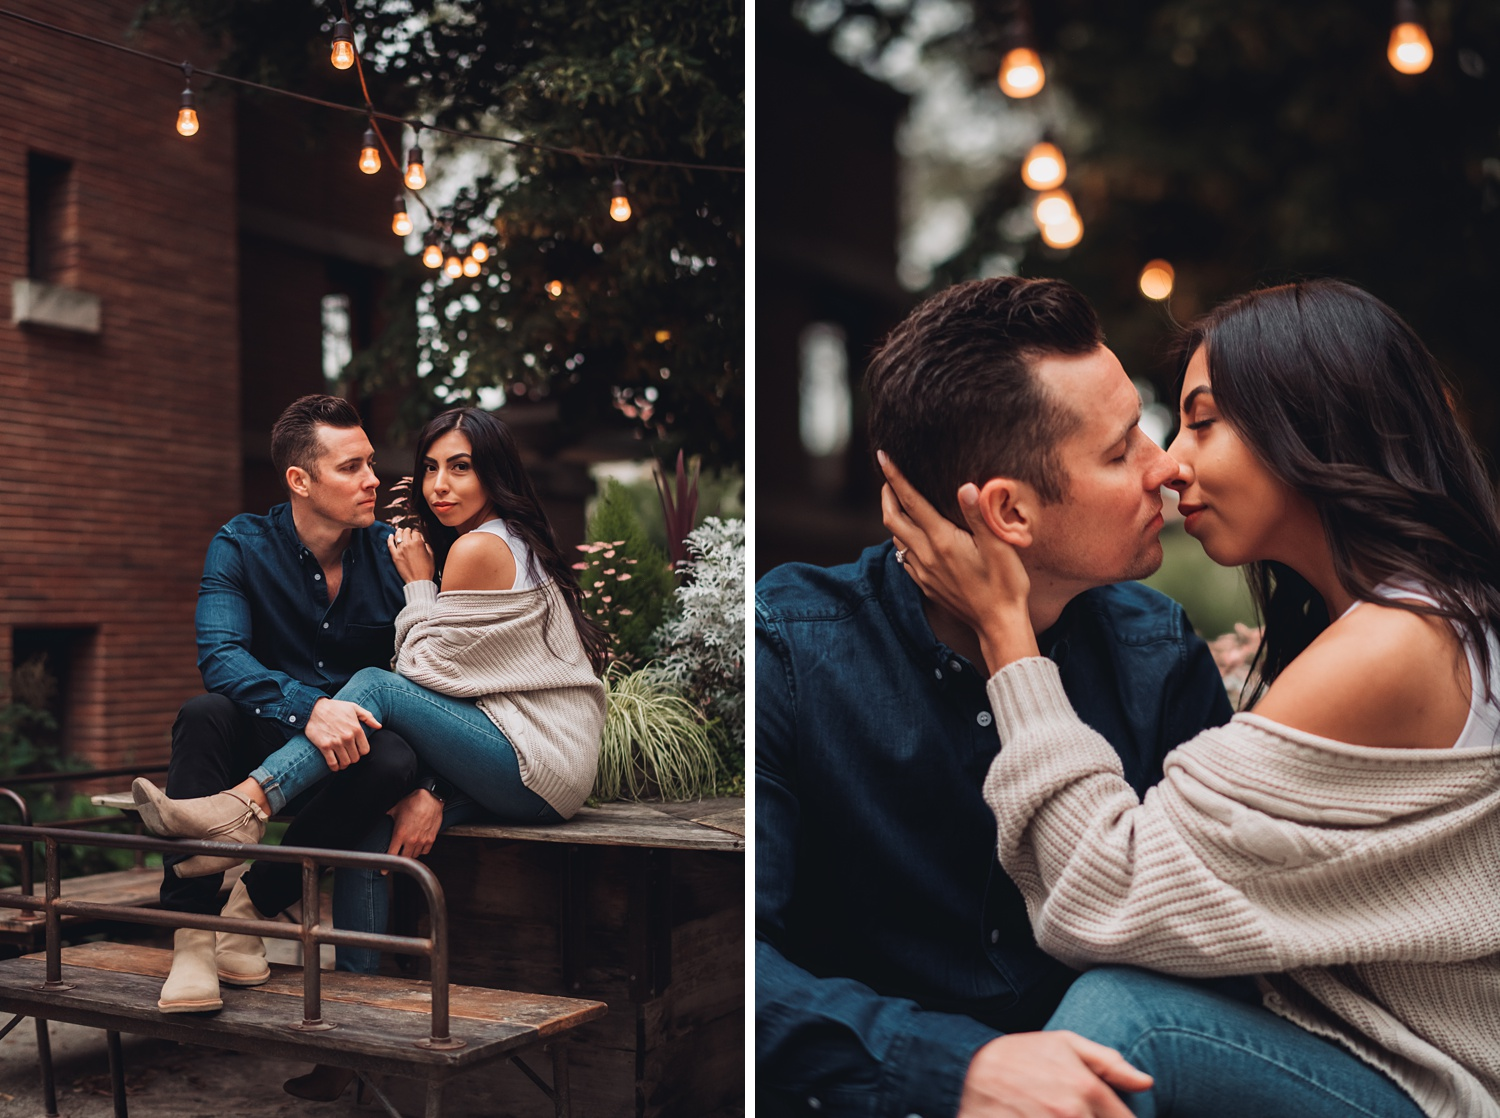 University of Chicago Engagement - The Adamkovi, cute coffee shop photo session